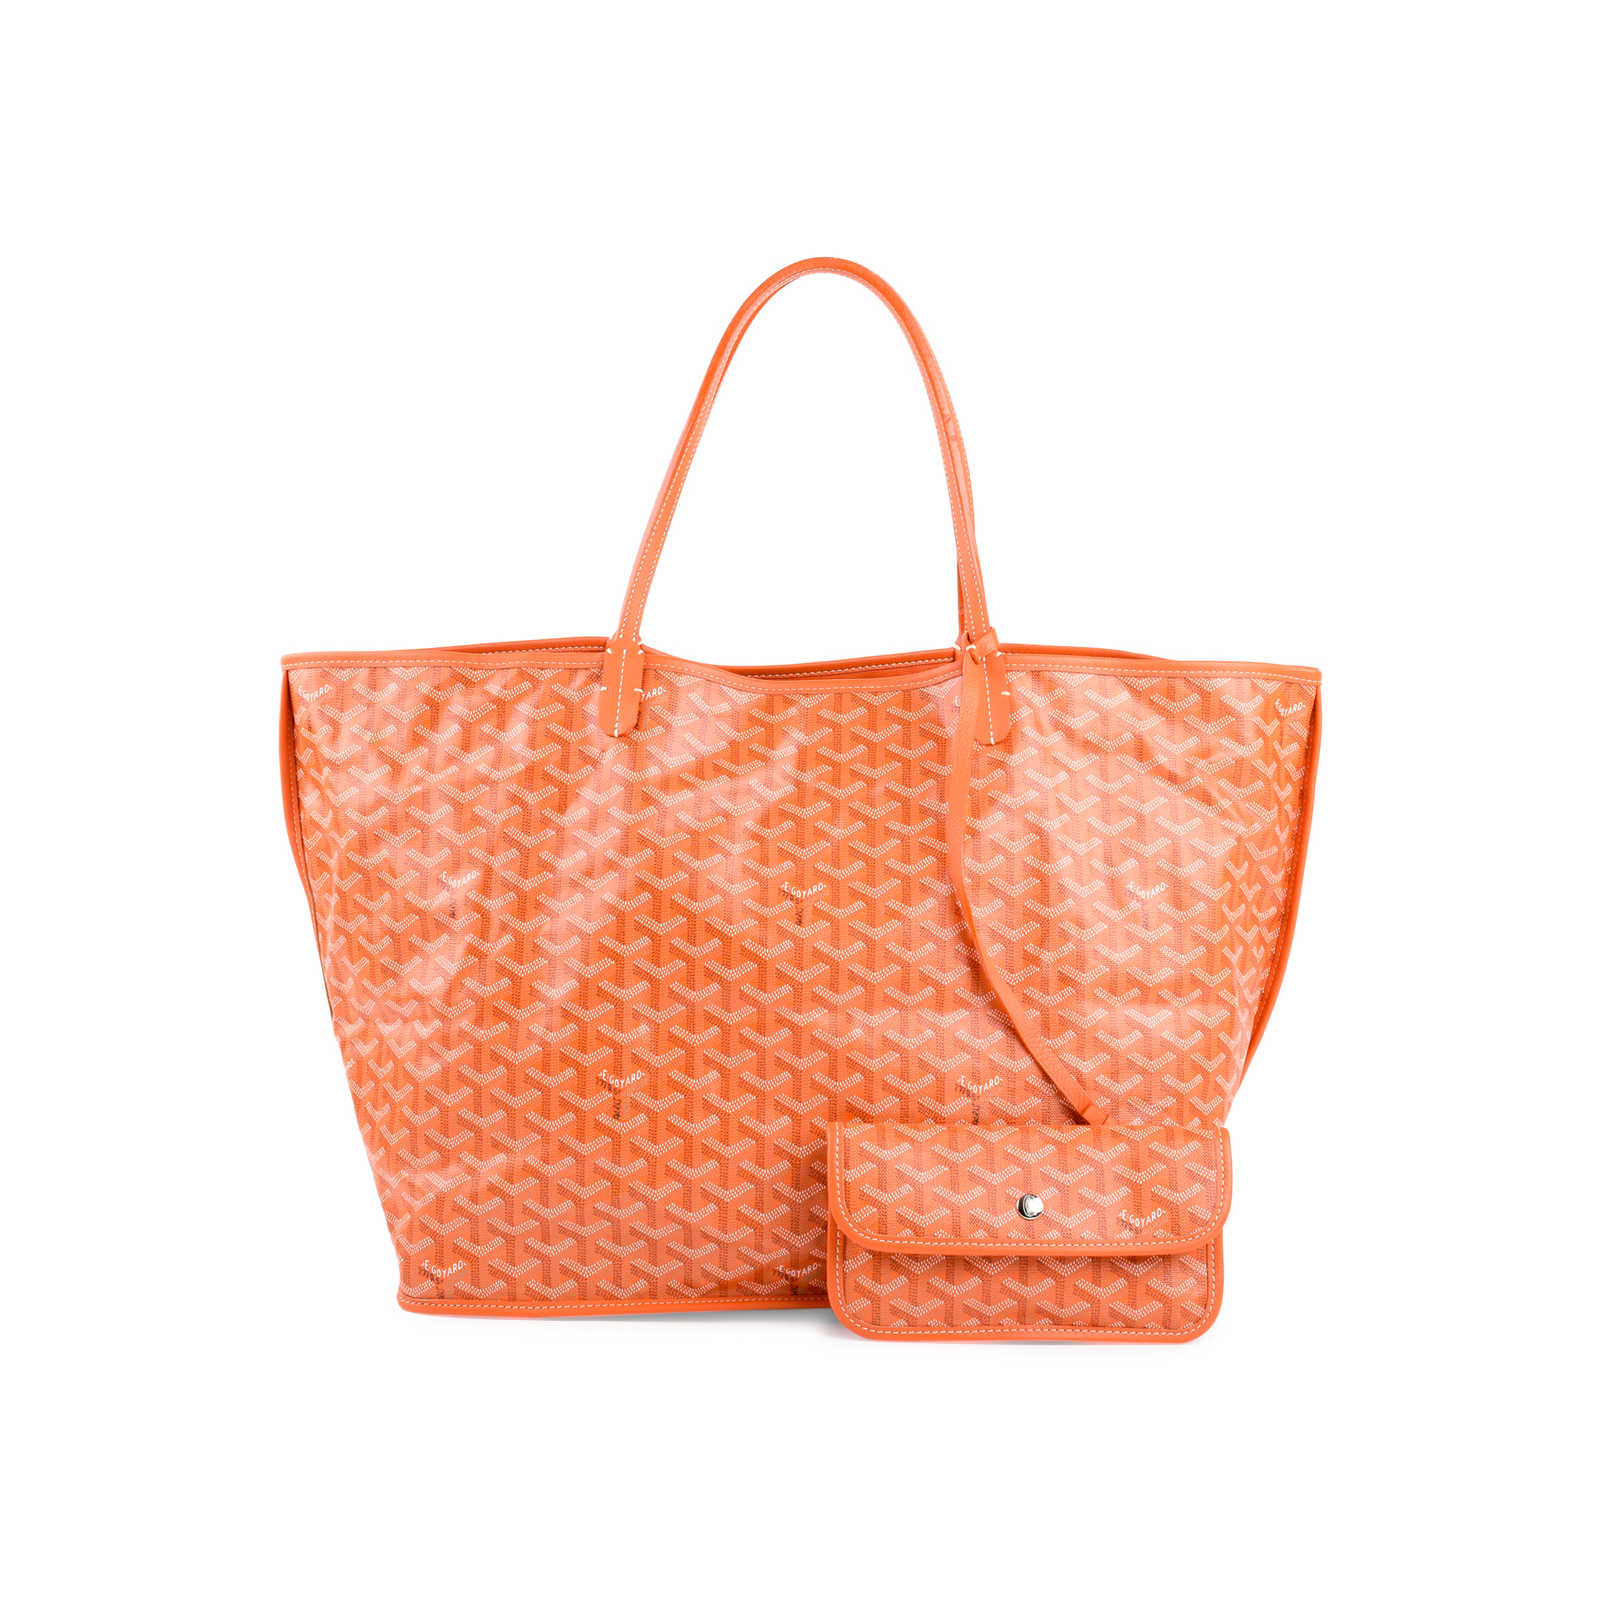 871e2853126a Authentic Second Hand Goyard Anjou GM Tote Bag (PSS-470-00007) ...